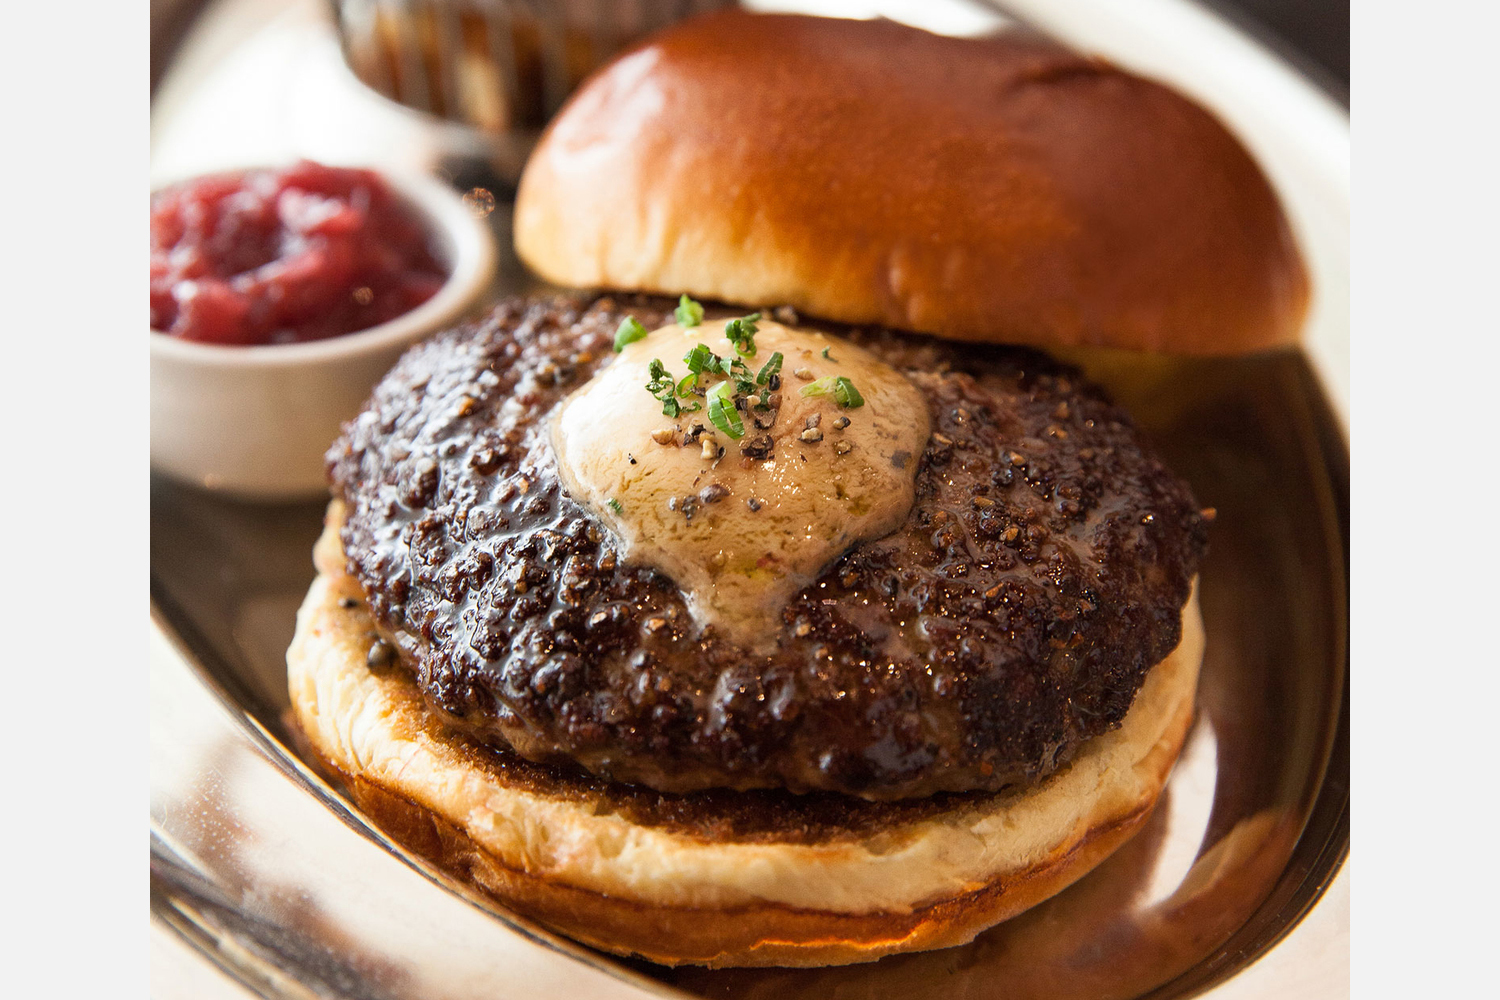 RPM Truffle Burger at RPM Steak, $17